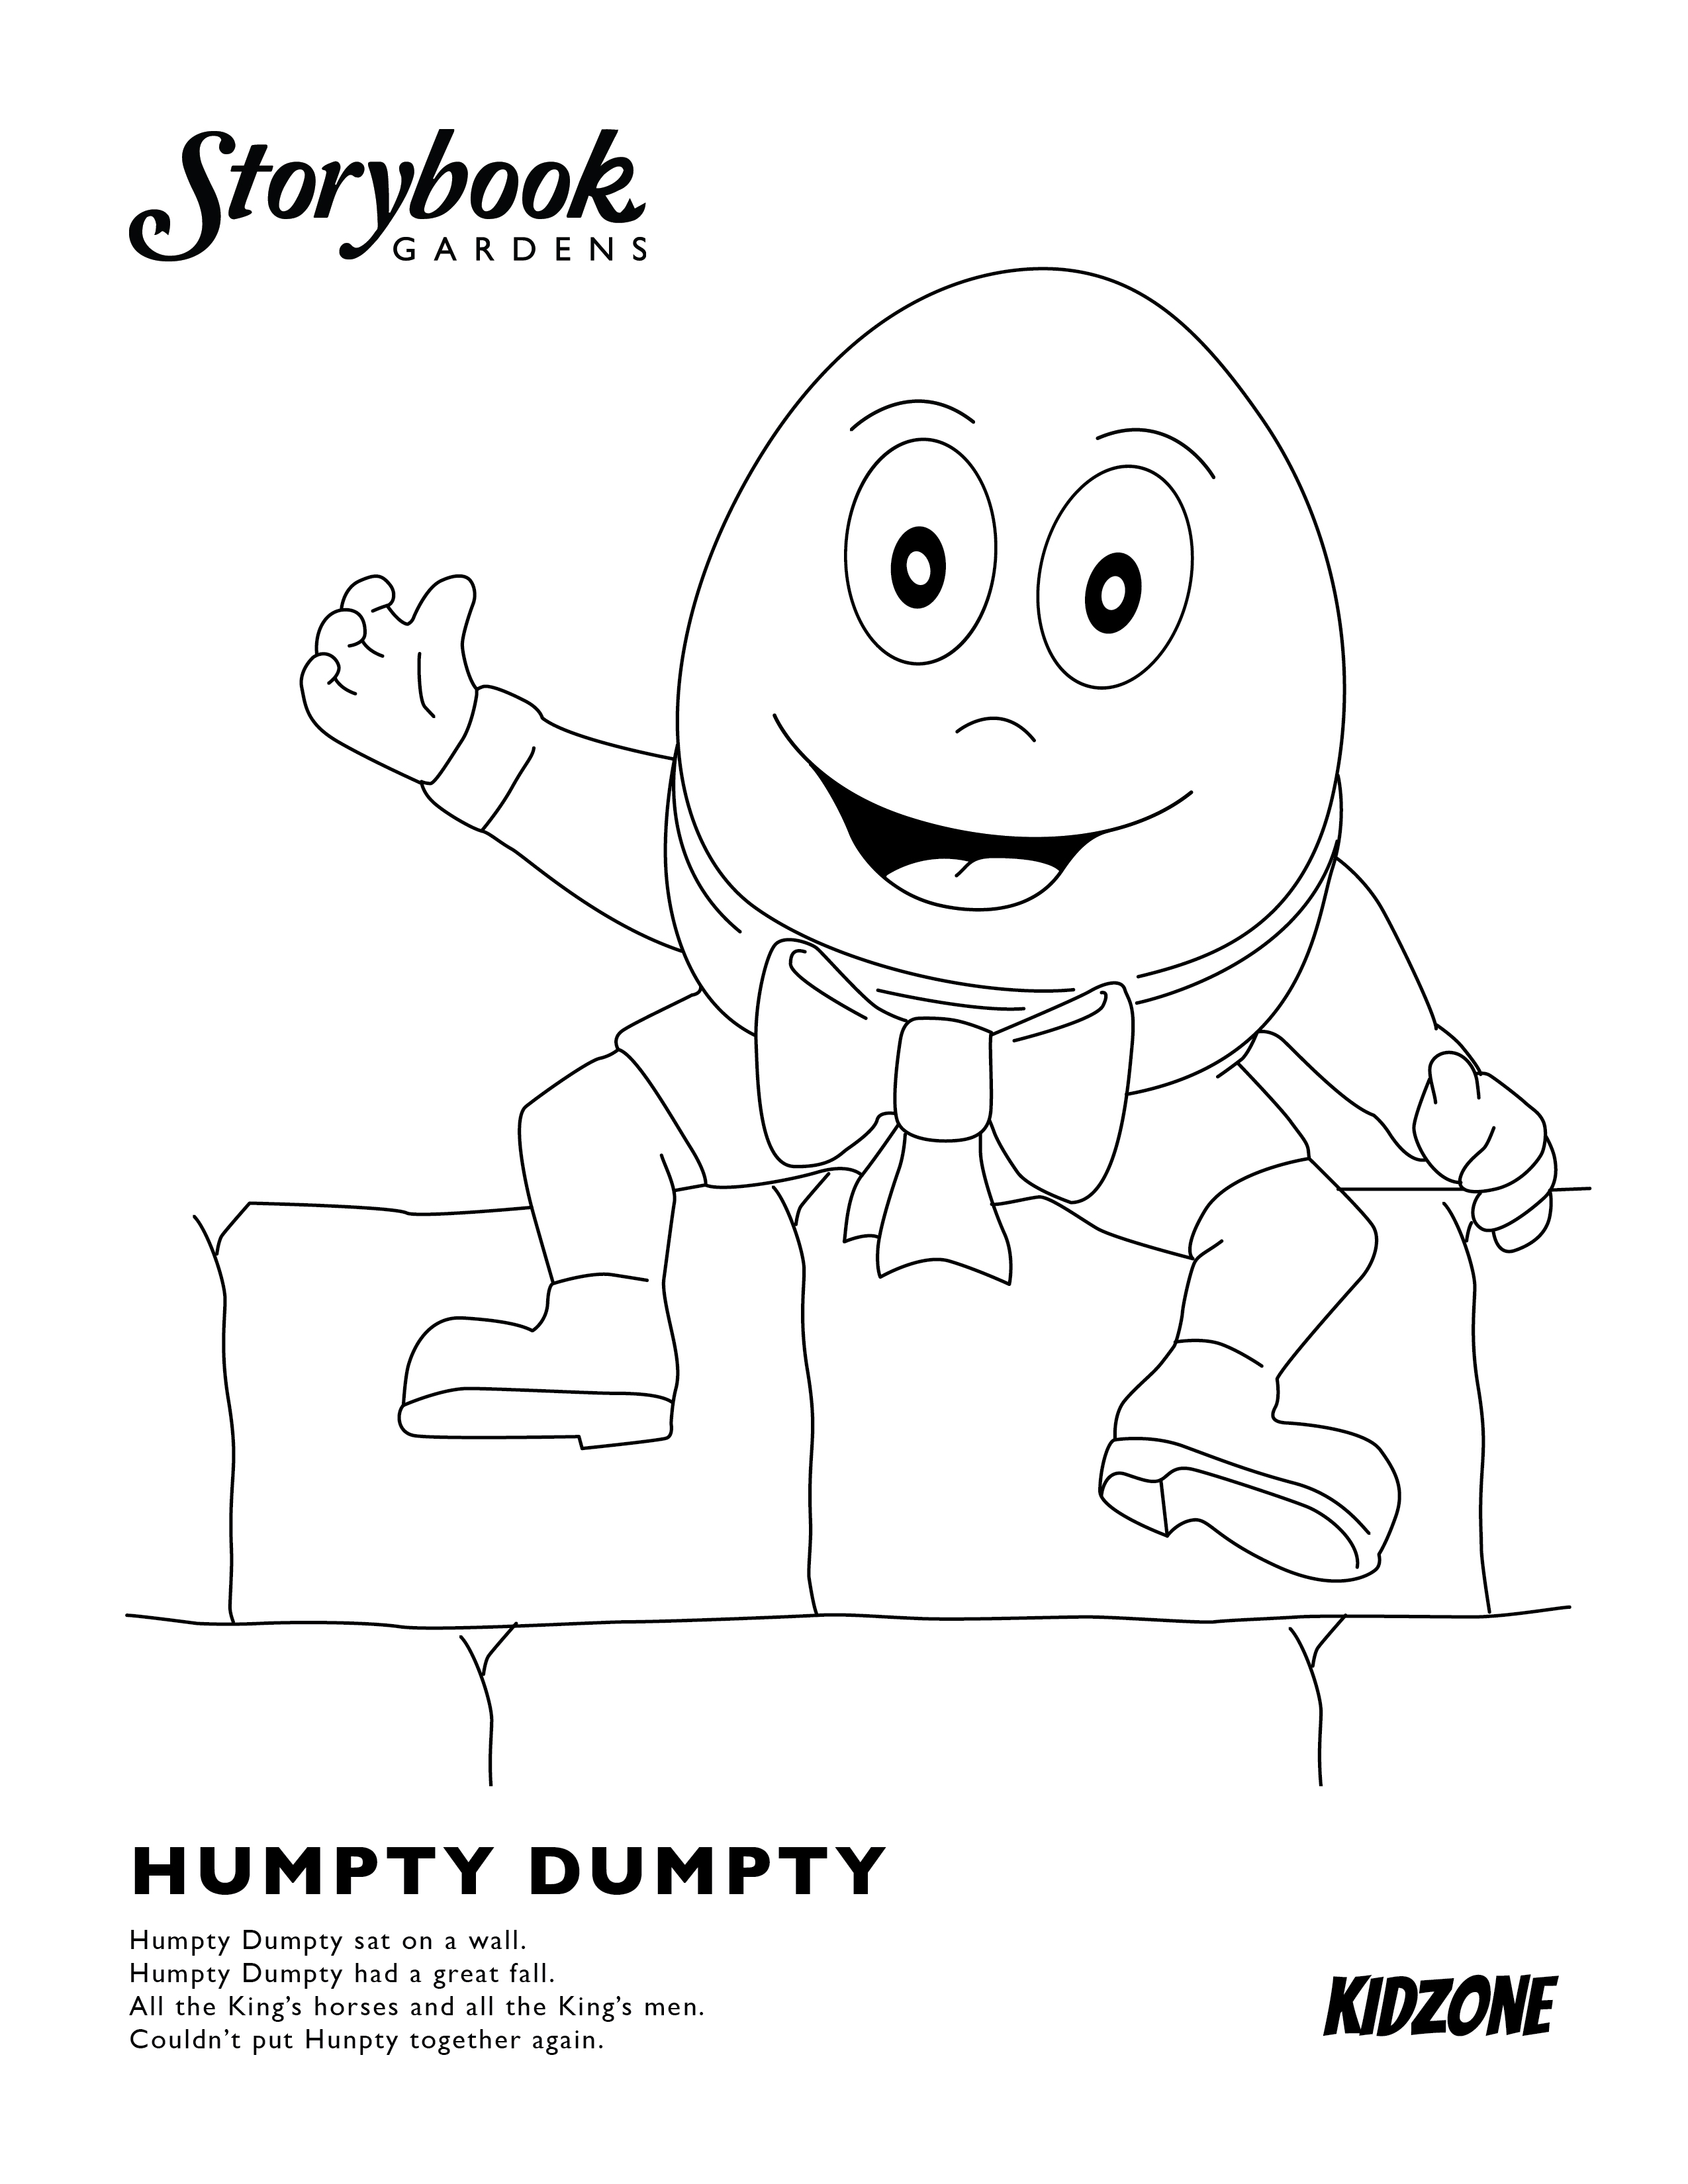 /application/themes/storybook_theme/images/games/colouring_pages_jpg/StorybookGardensColouringPage_HumptyDumpty.jpg